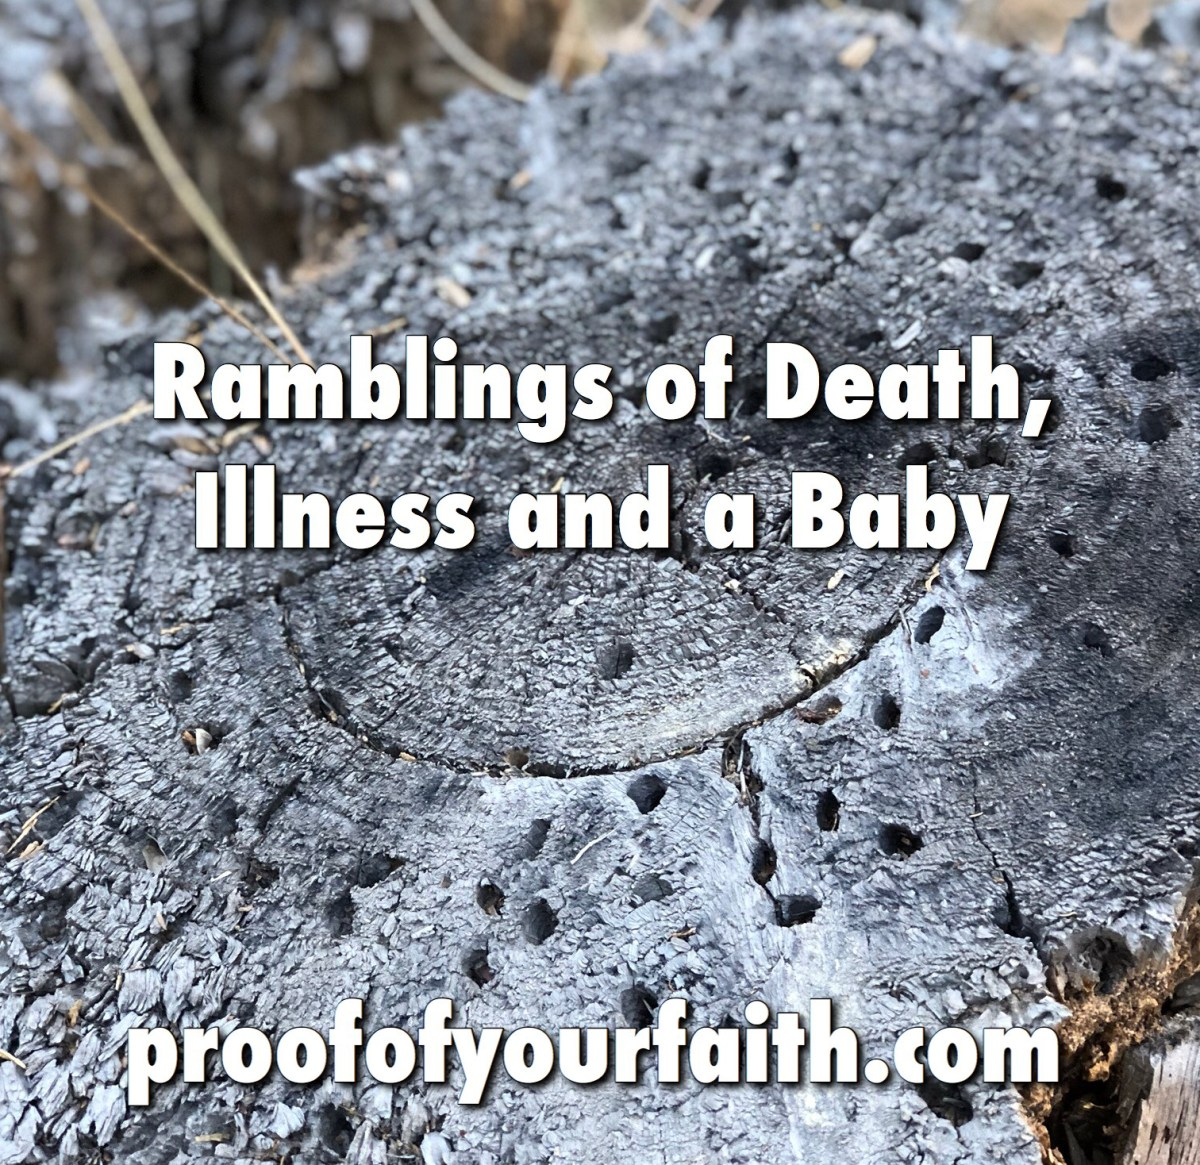 Ramblings of Death, Illness and a Baby